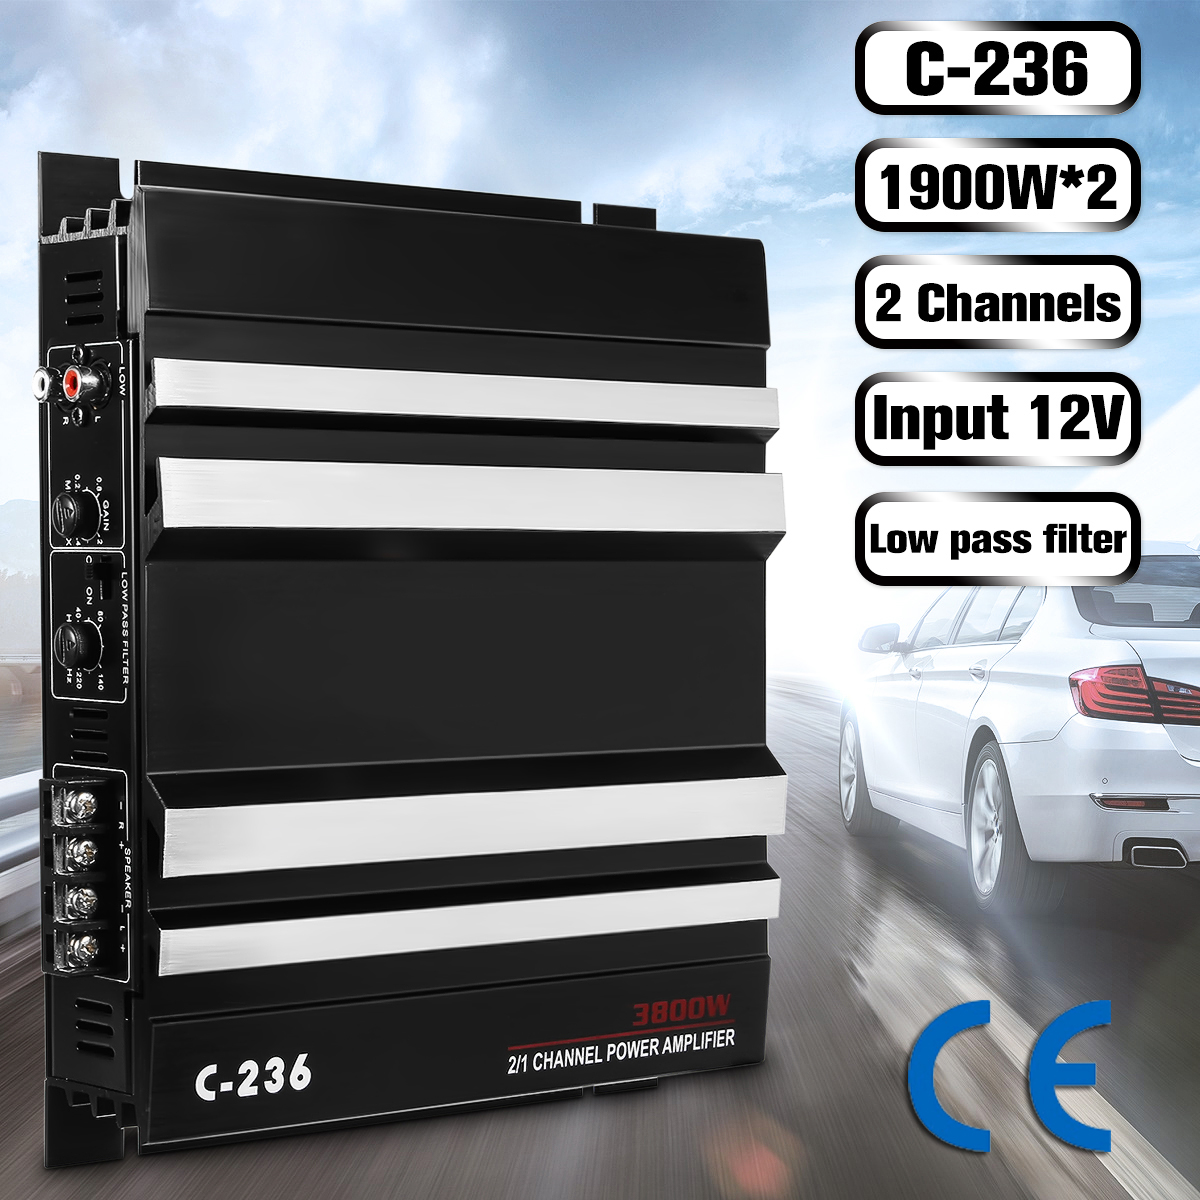 KROAK 3800 Watt 2 Channel 12V Car Audio Power Amplifier Amp Aluminum Alloy Black Car Amplifiers Audio Speaker Amplifiers black 12v car amplifier high power 1900w audio 4 channel 4 way amplifiers booster auto free shipping dropping